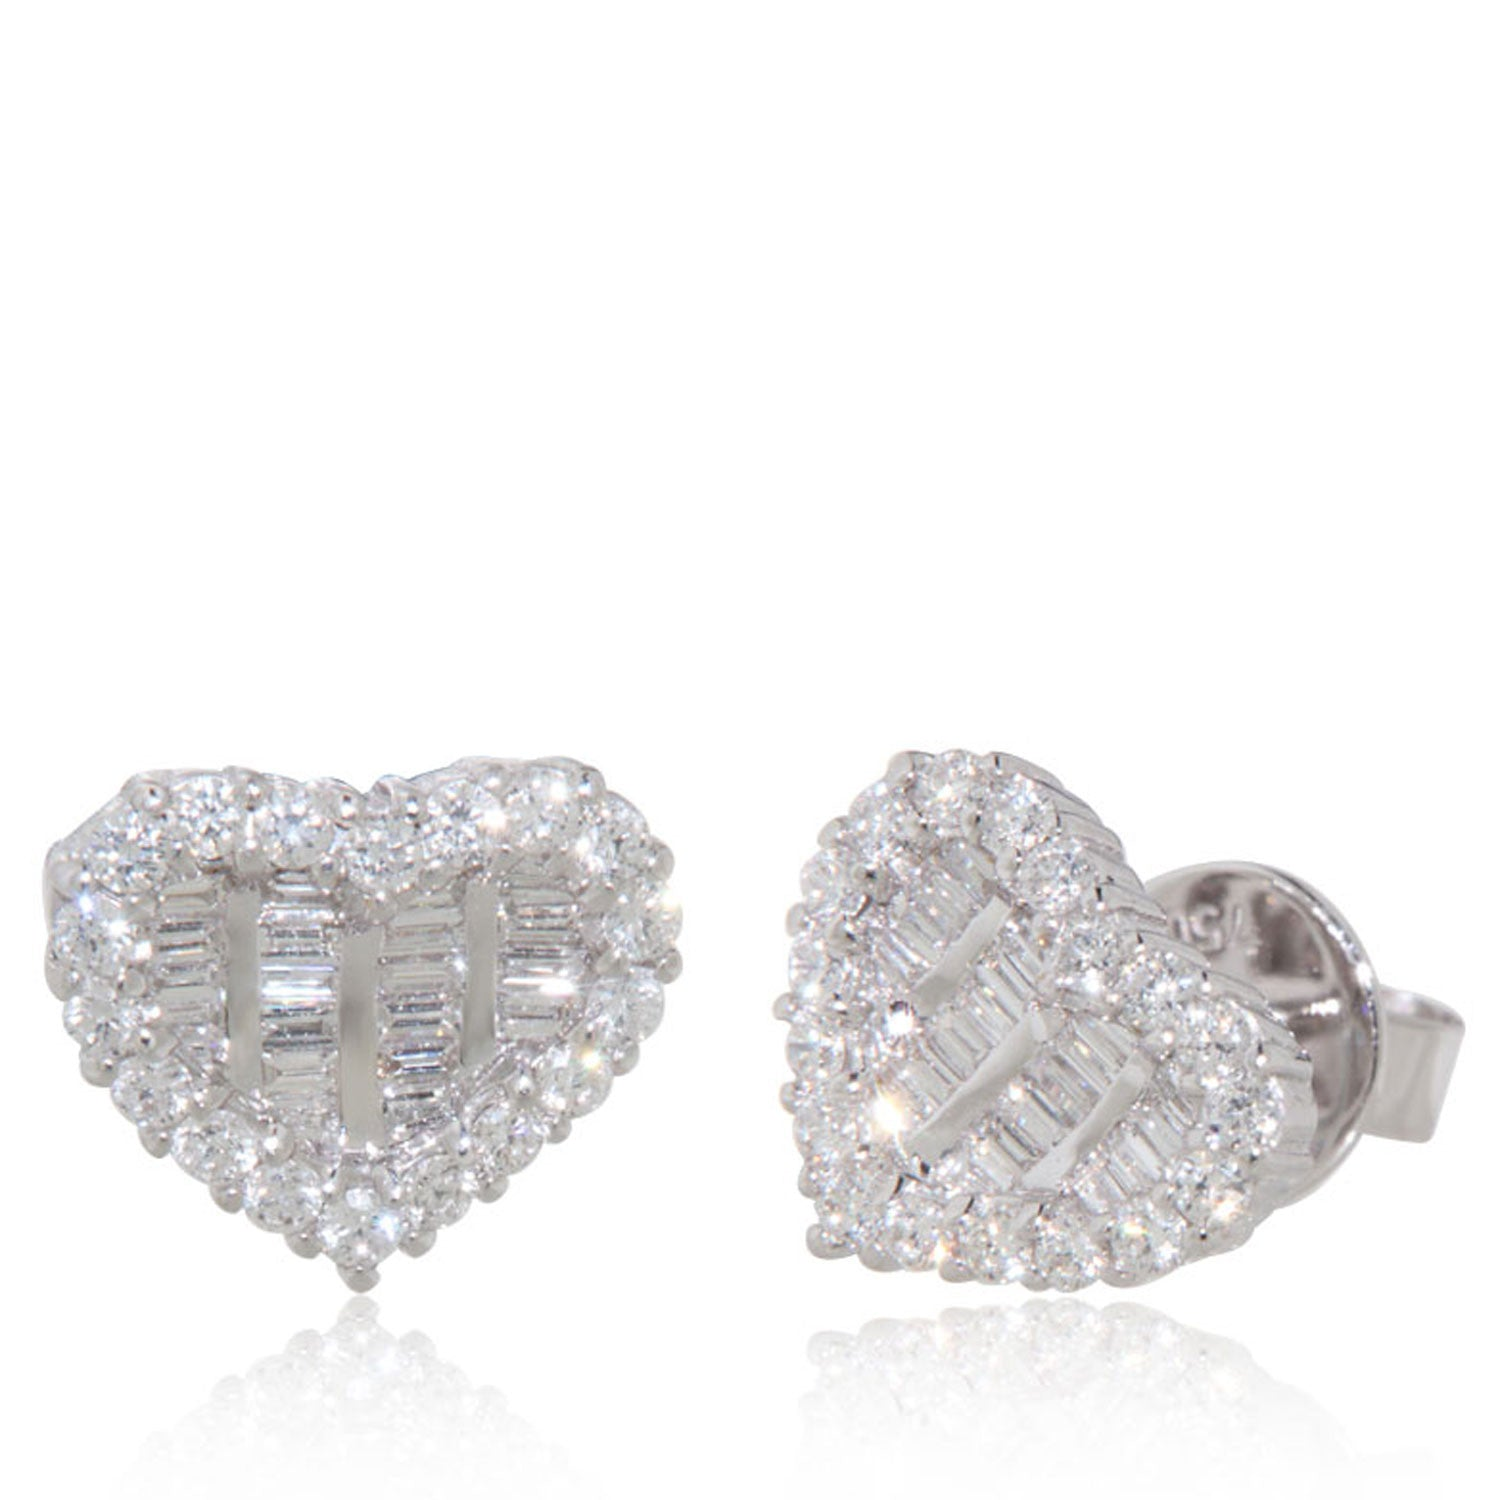 ger carats rose rectangular diamond products earrings shape side